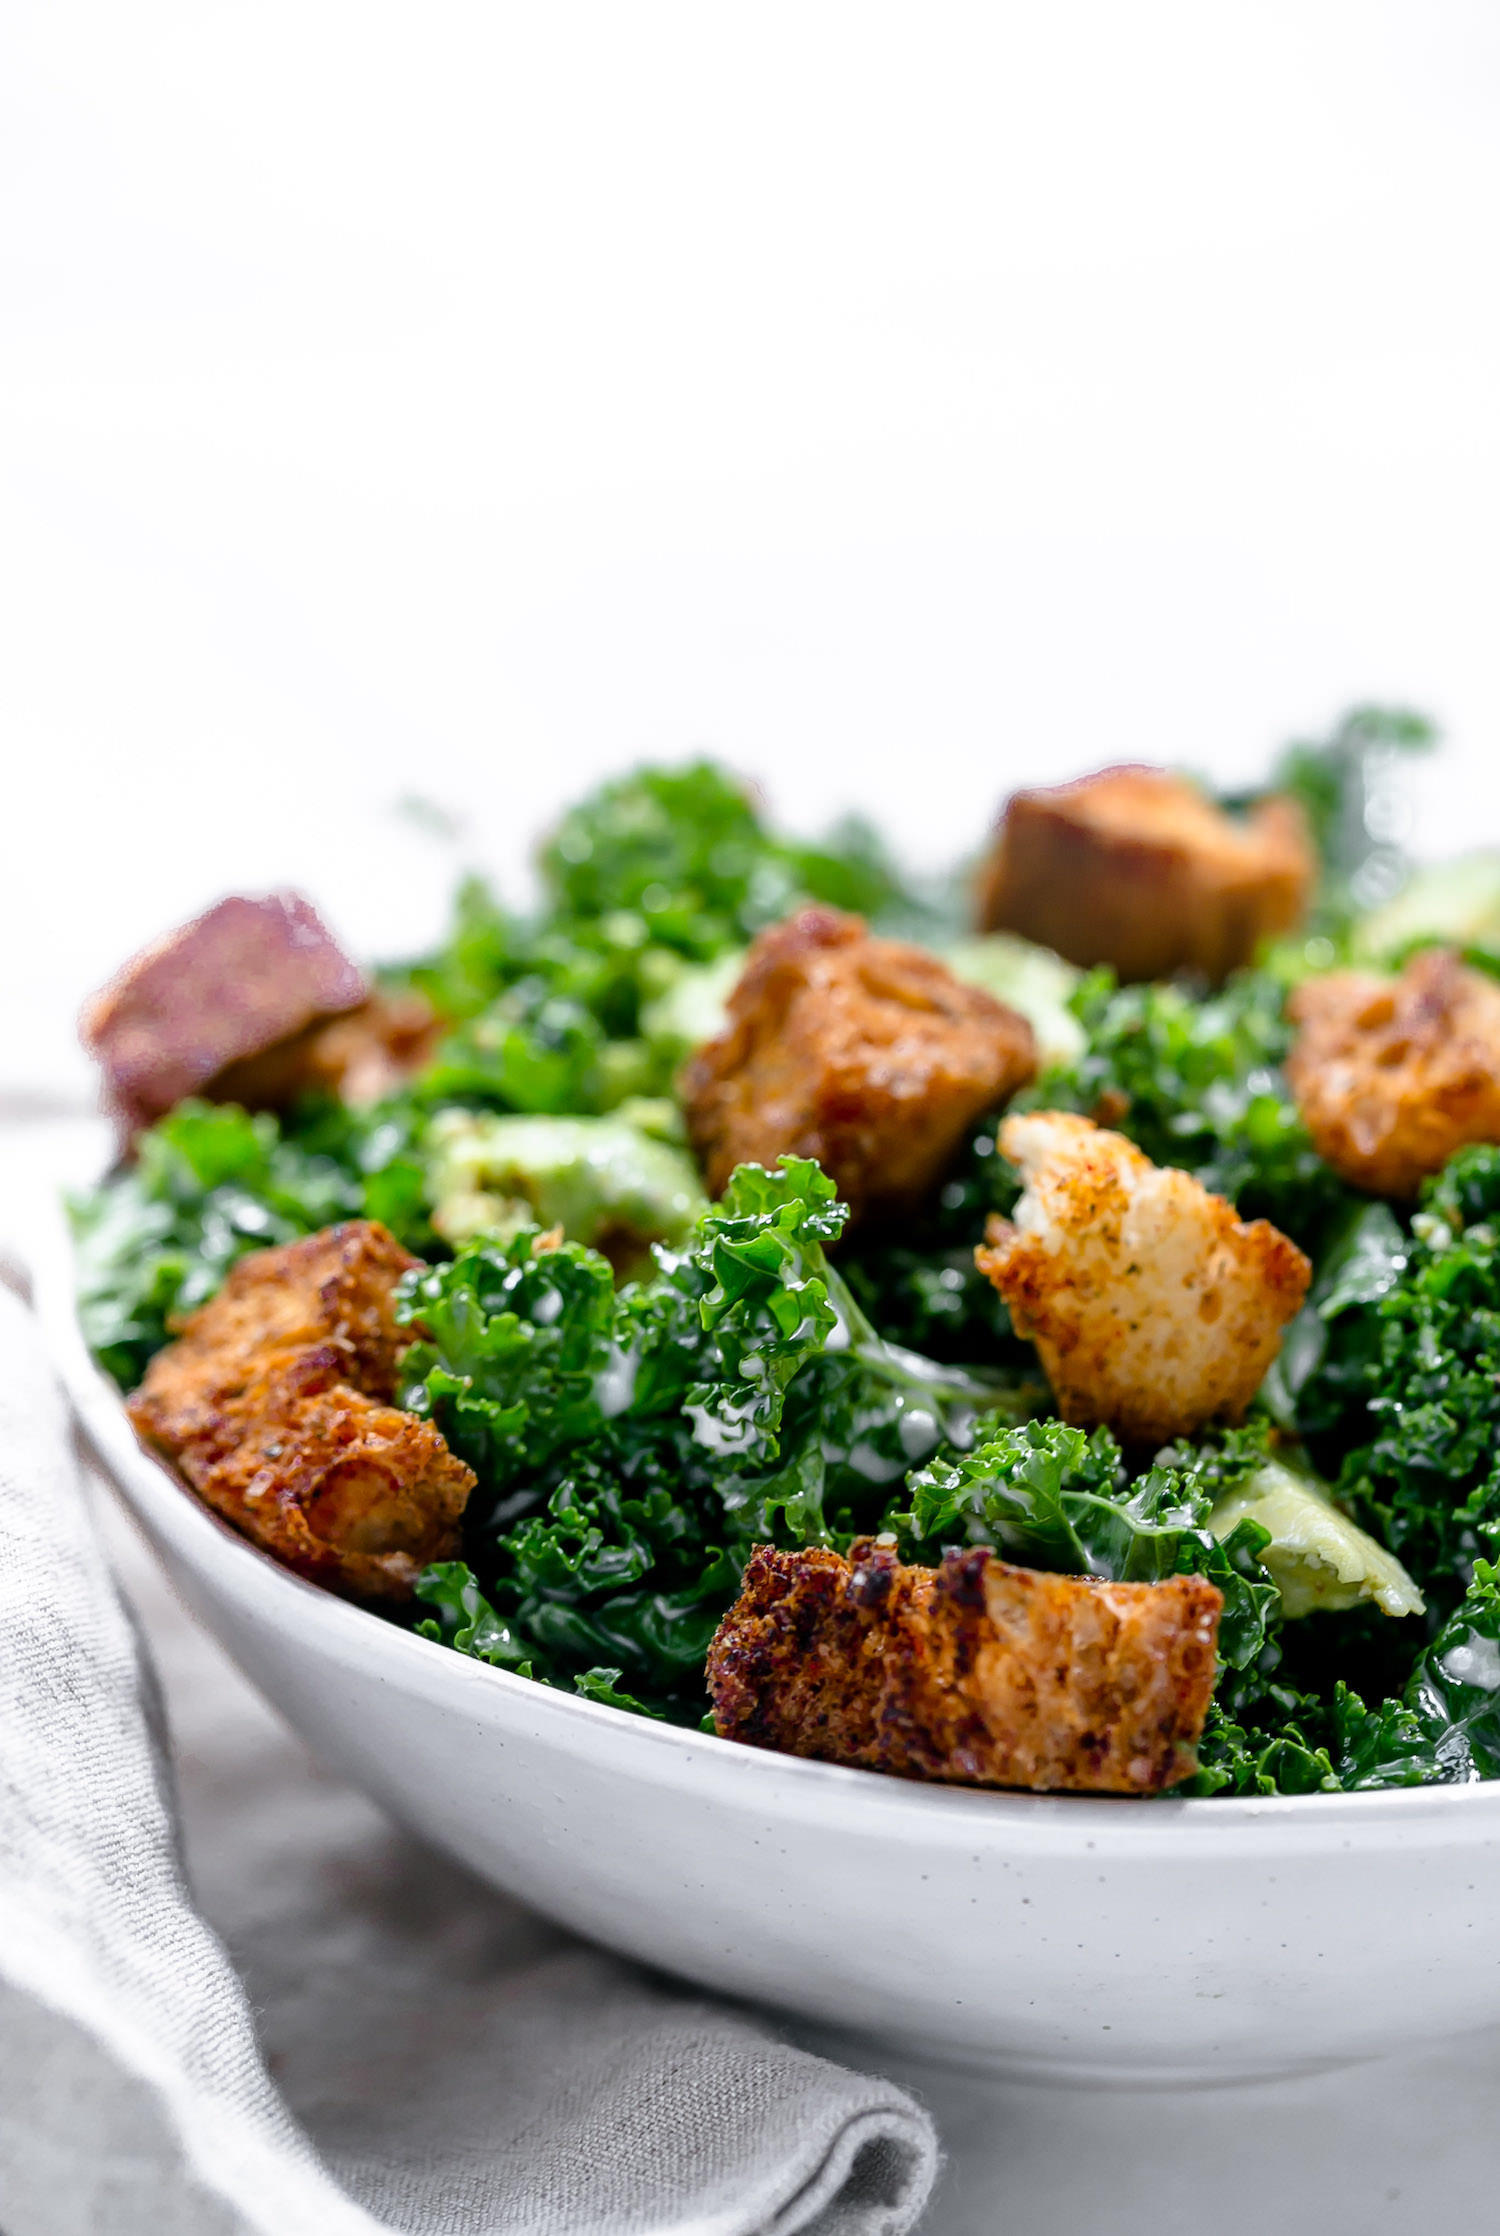 Garlicky Kale Avocado Salad With Homemade Croutons: crisp kale and creamy avocado tossed in a tangy, garlicky mayo dressing and topped with crunchy homemade croutons. | TrufflesandTrends.com